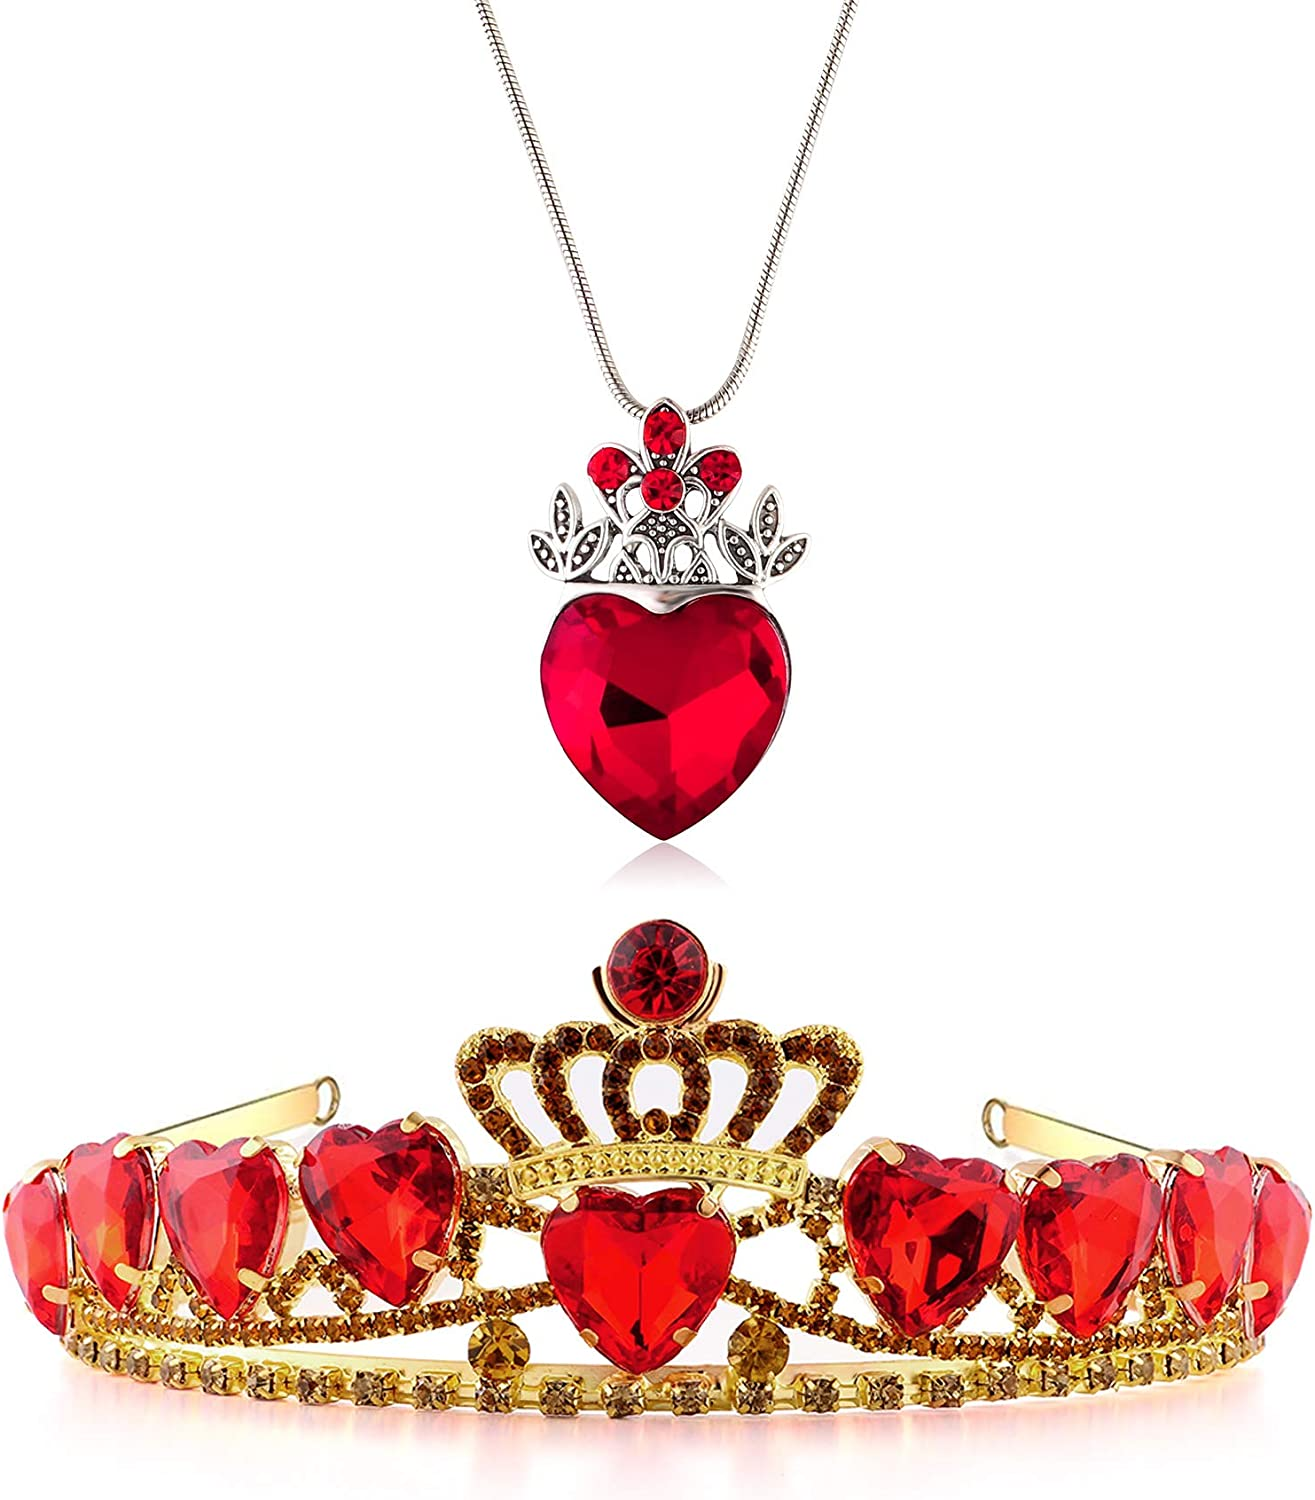 Evie Red Heart Regular dealer Tiara Max 59% OFF and Qu Necklace Set Jewelry Crown